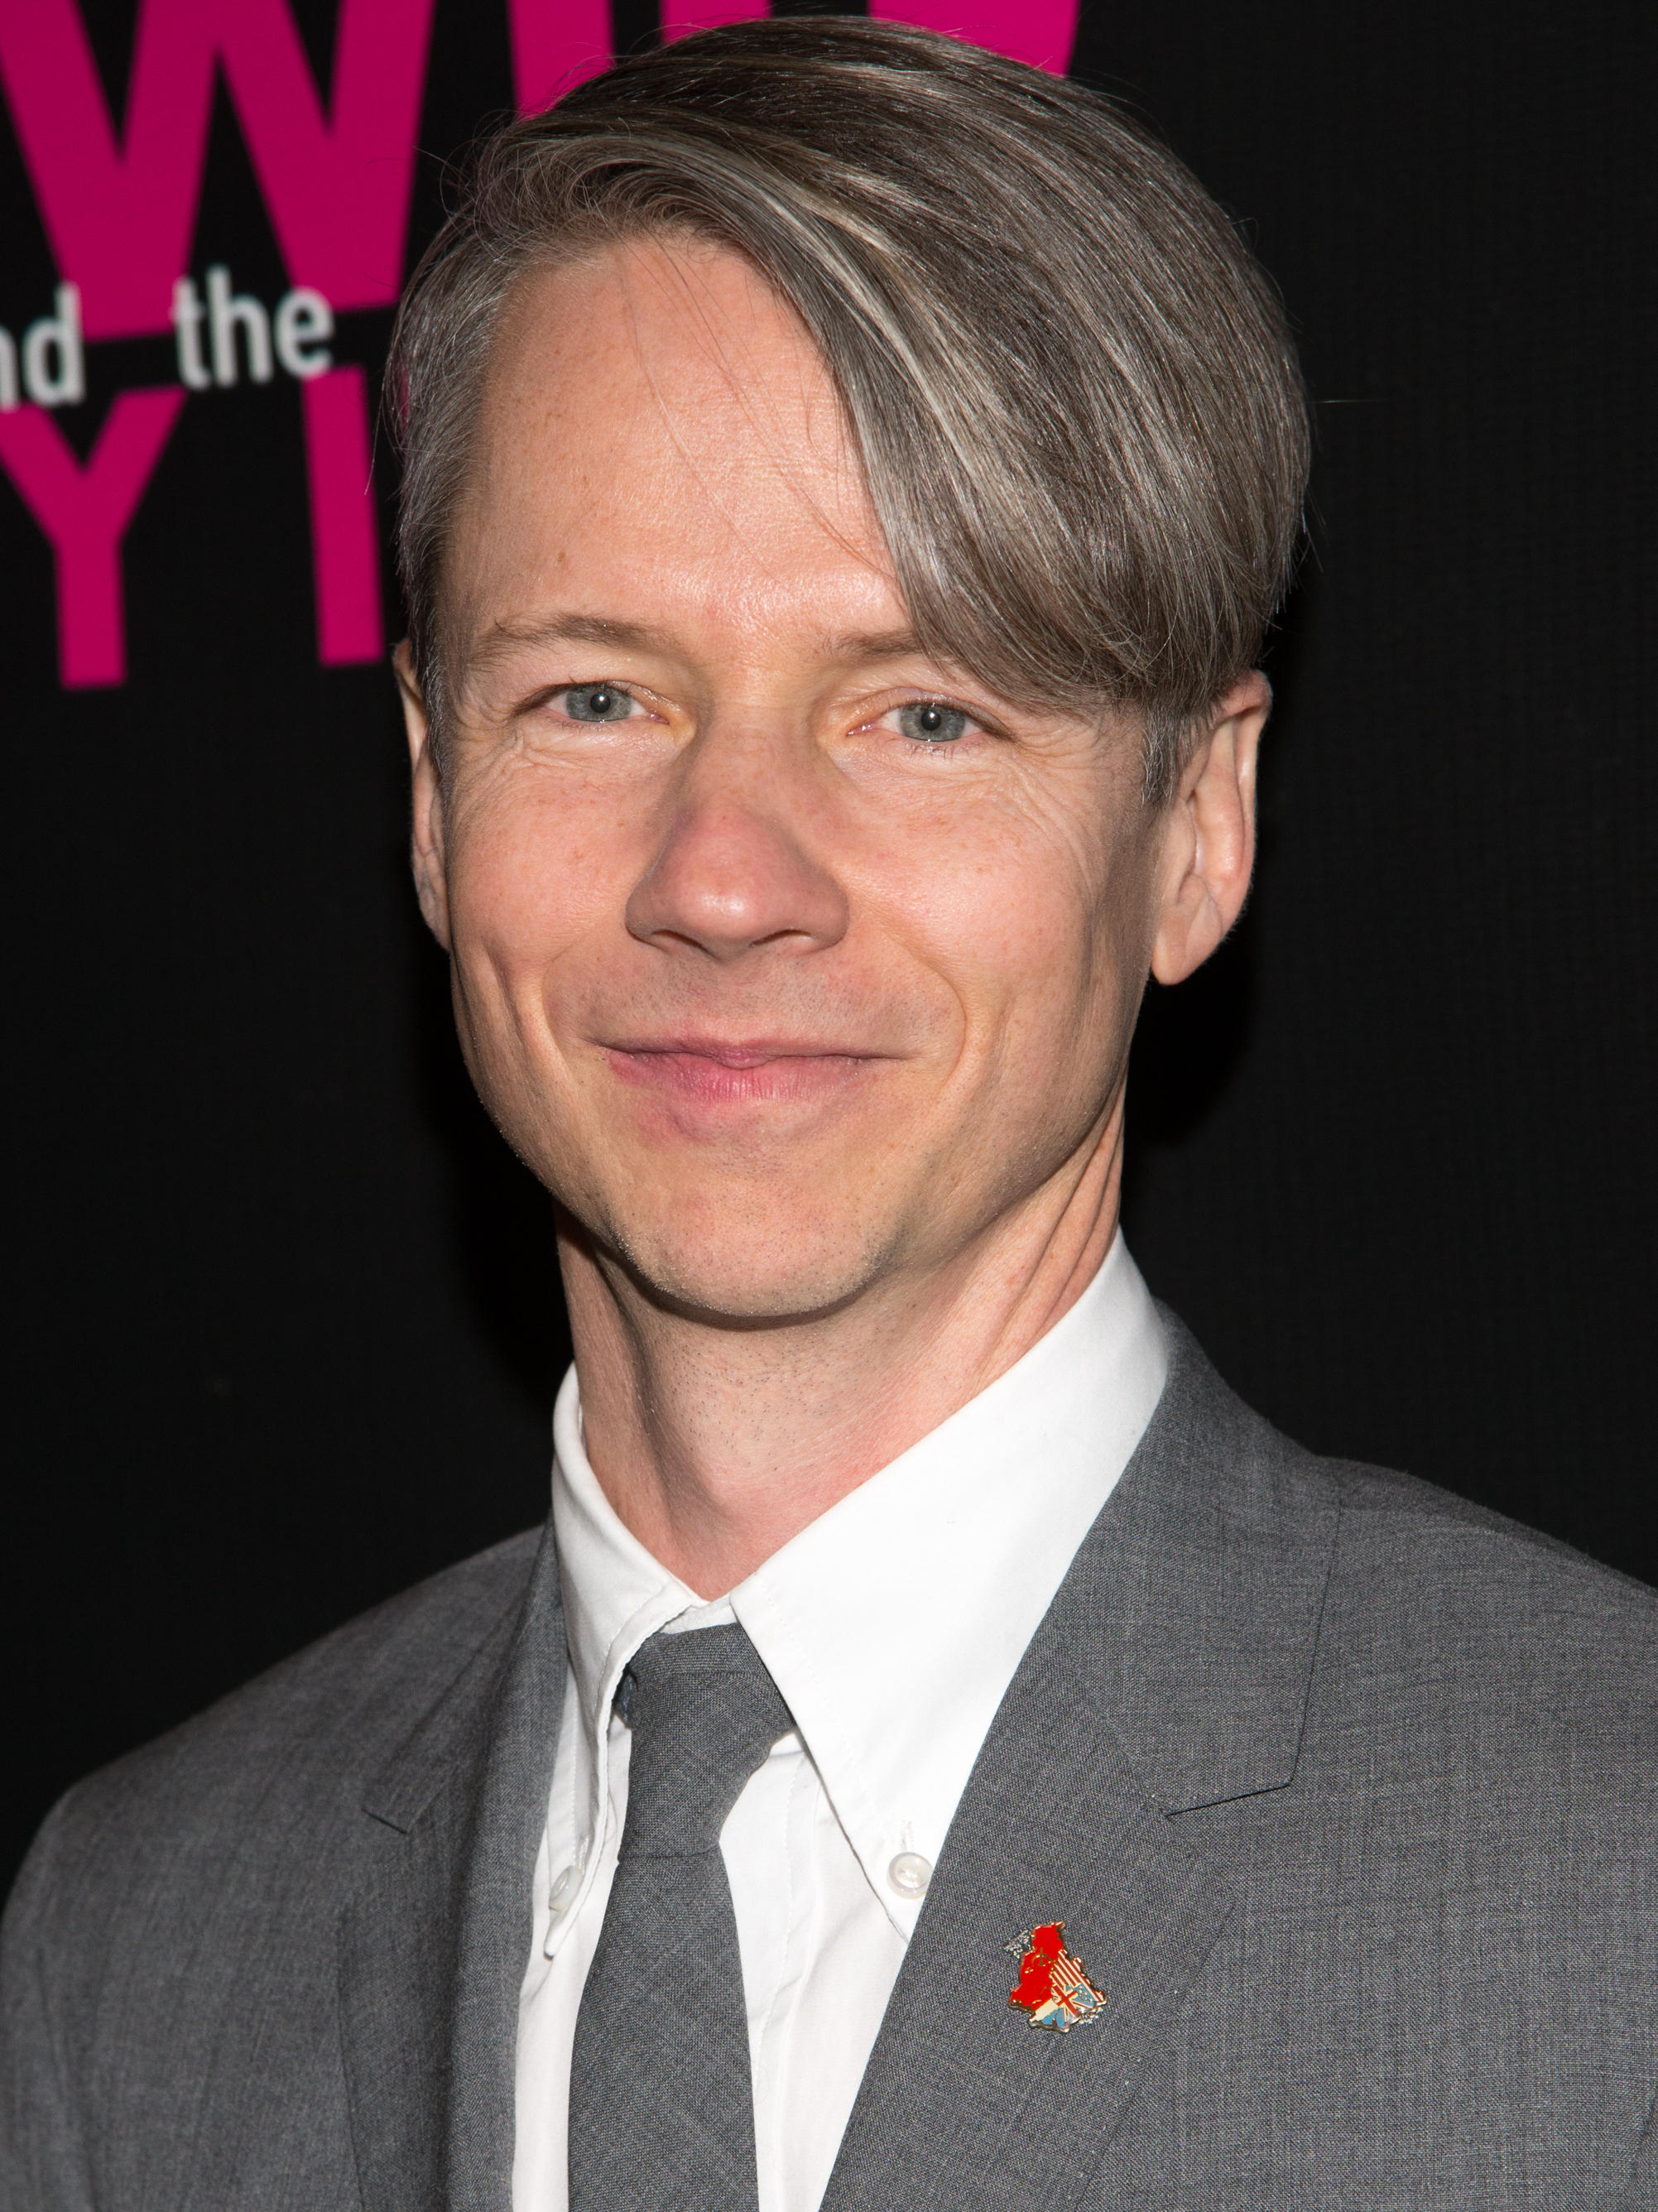 john cameron mitchell height